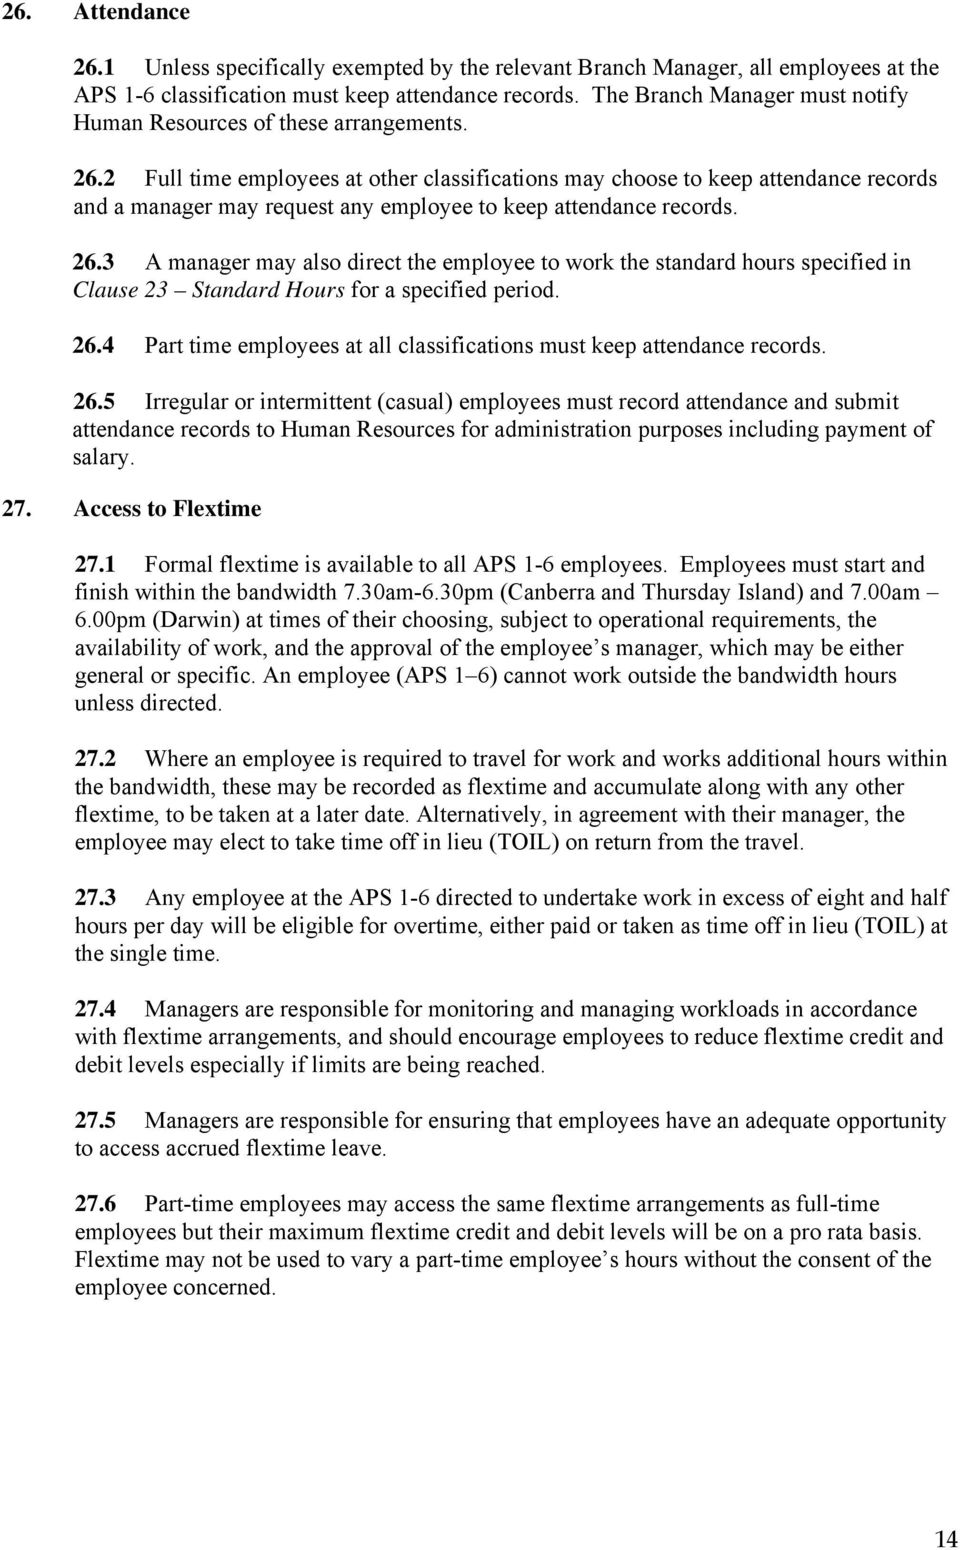 2 Full time employees at other classifications may choose to keep attendance records and a manager may request any employee to keep attendance records. 26.